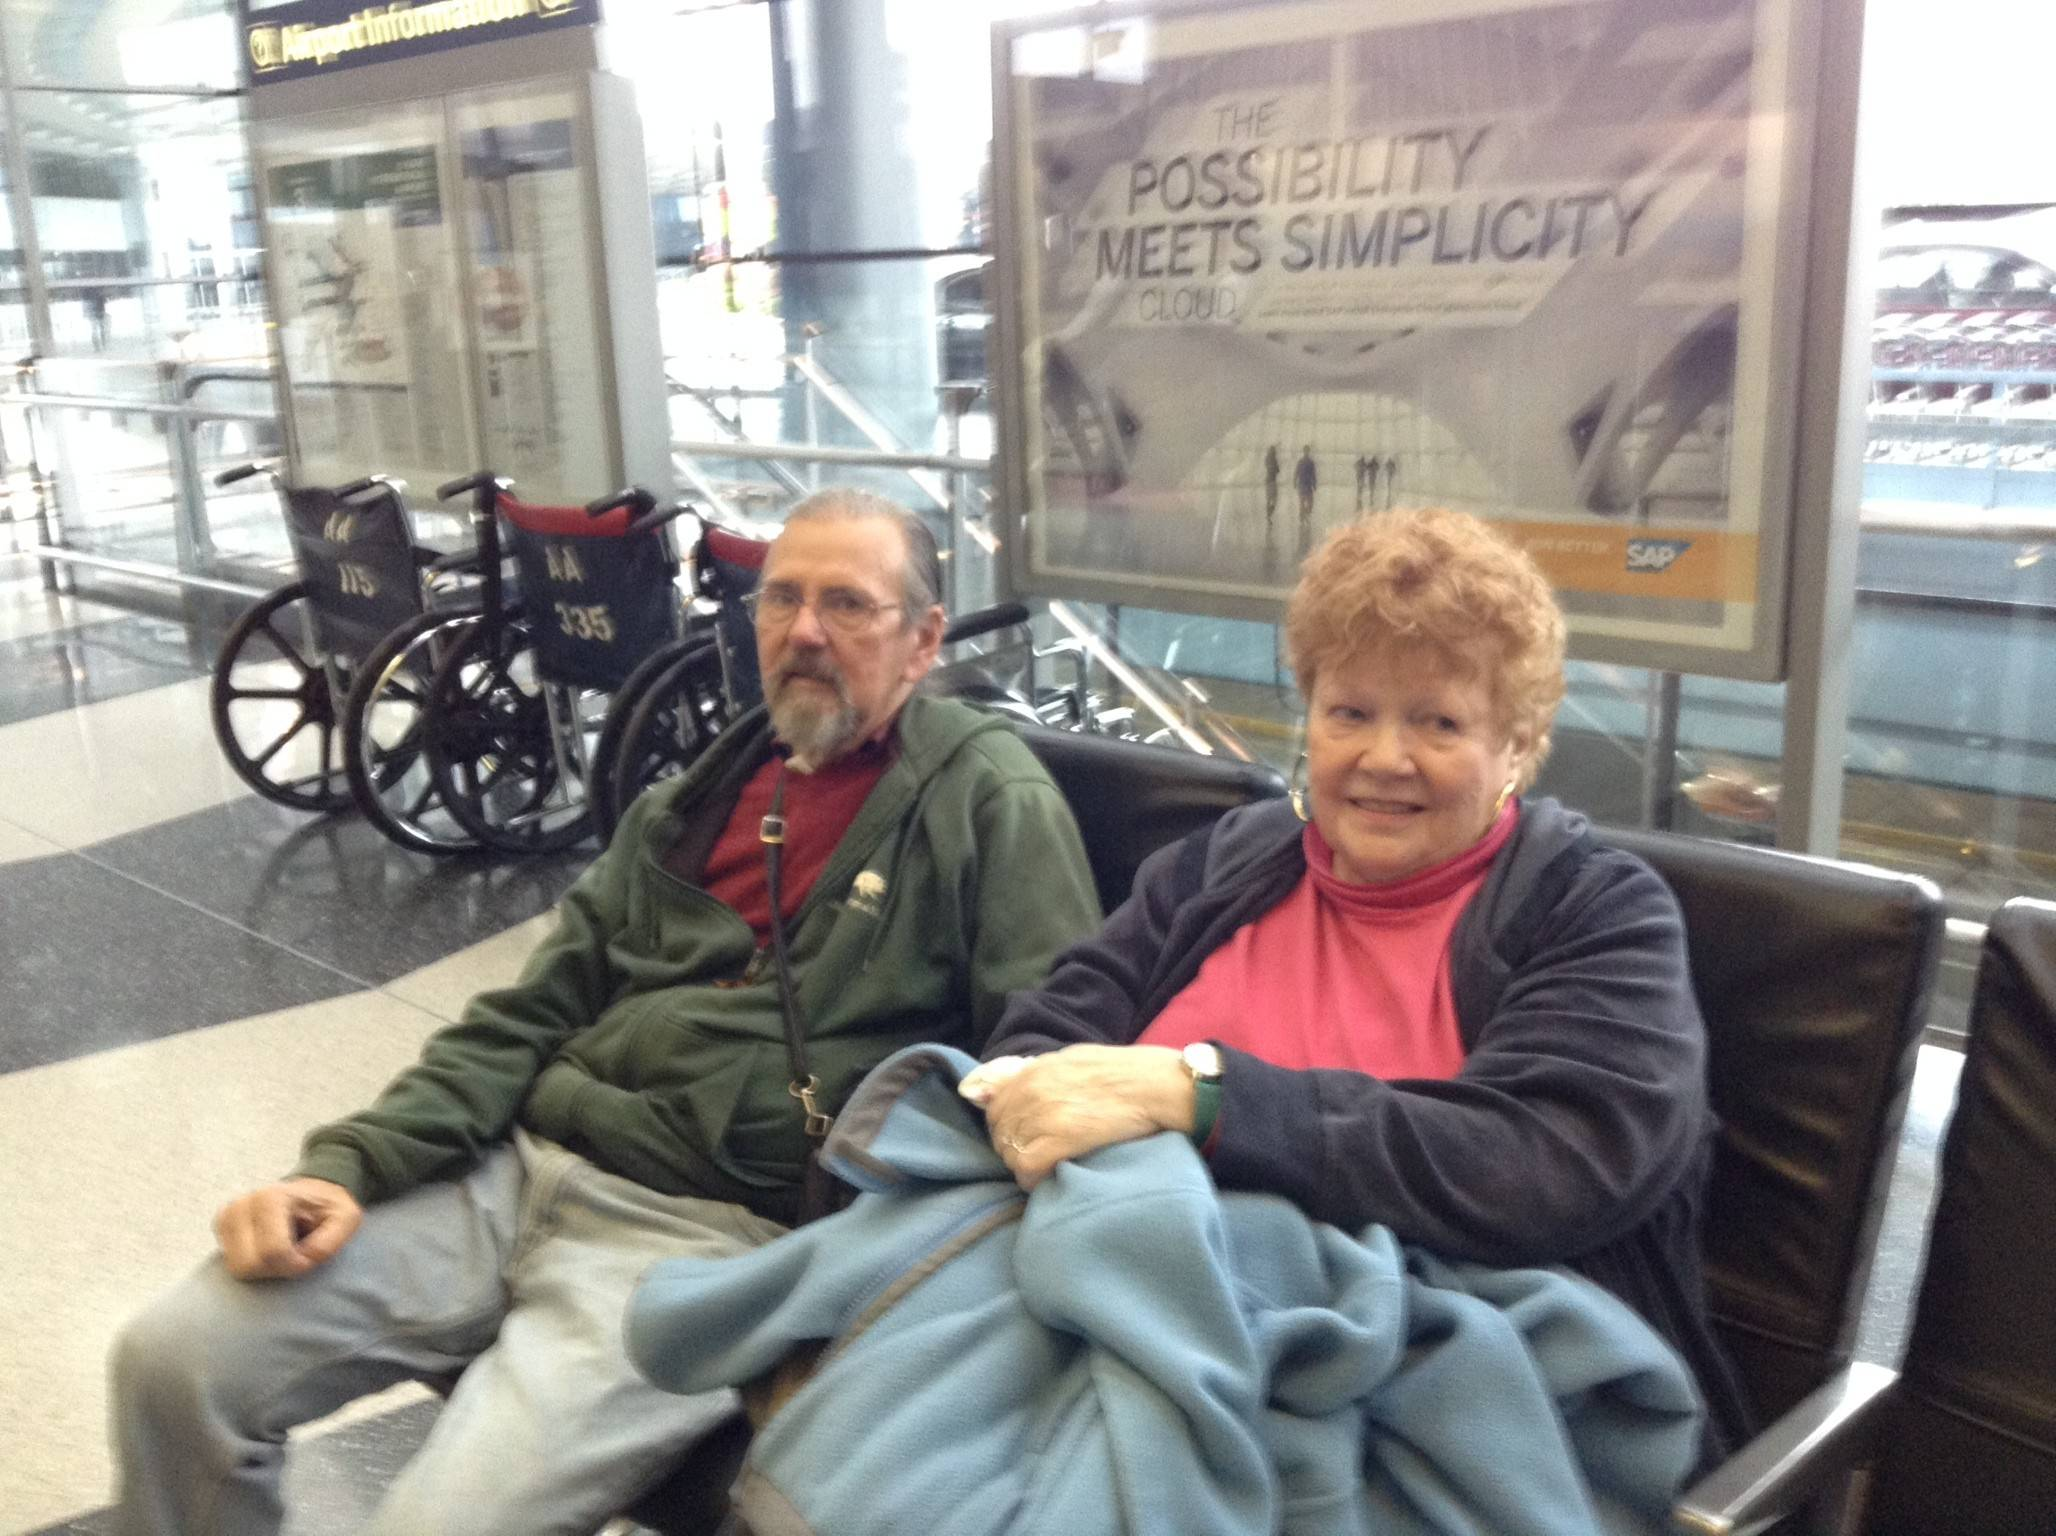 Jackie and Art Skwerski of Oak Park wait at O'Hare International Airport. Their flight was on time Tuesday.